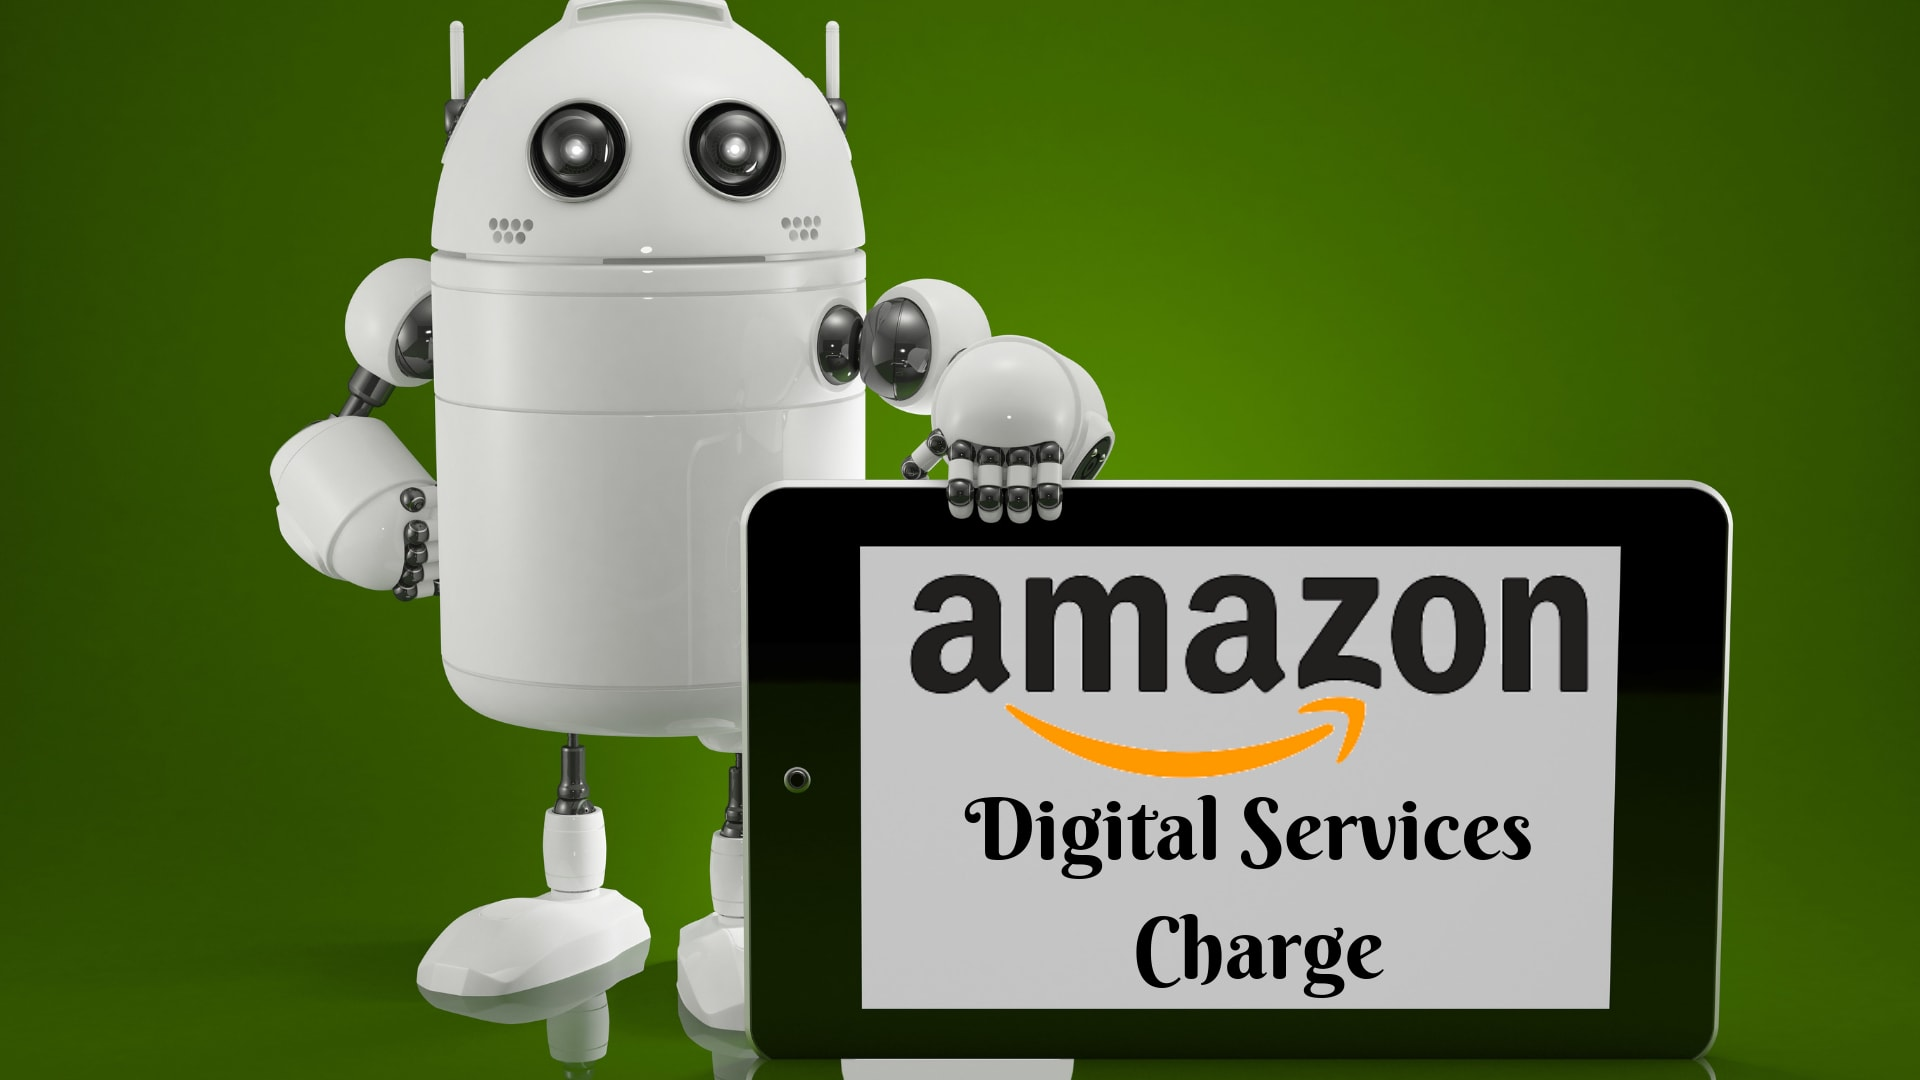 Amazon Digital Services Charge